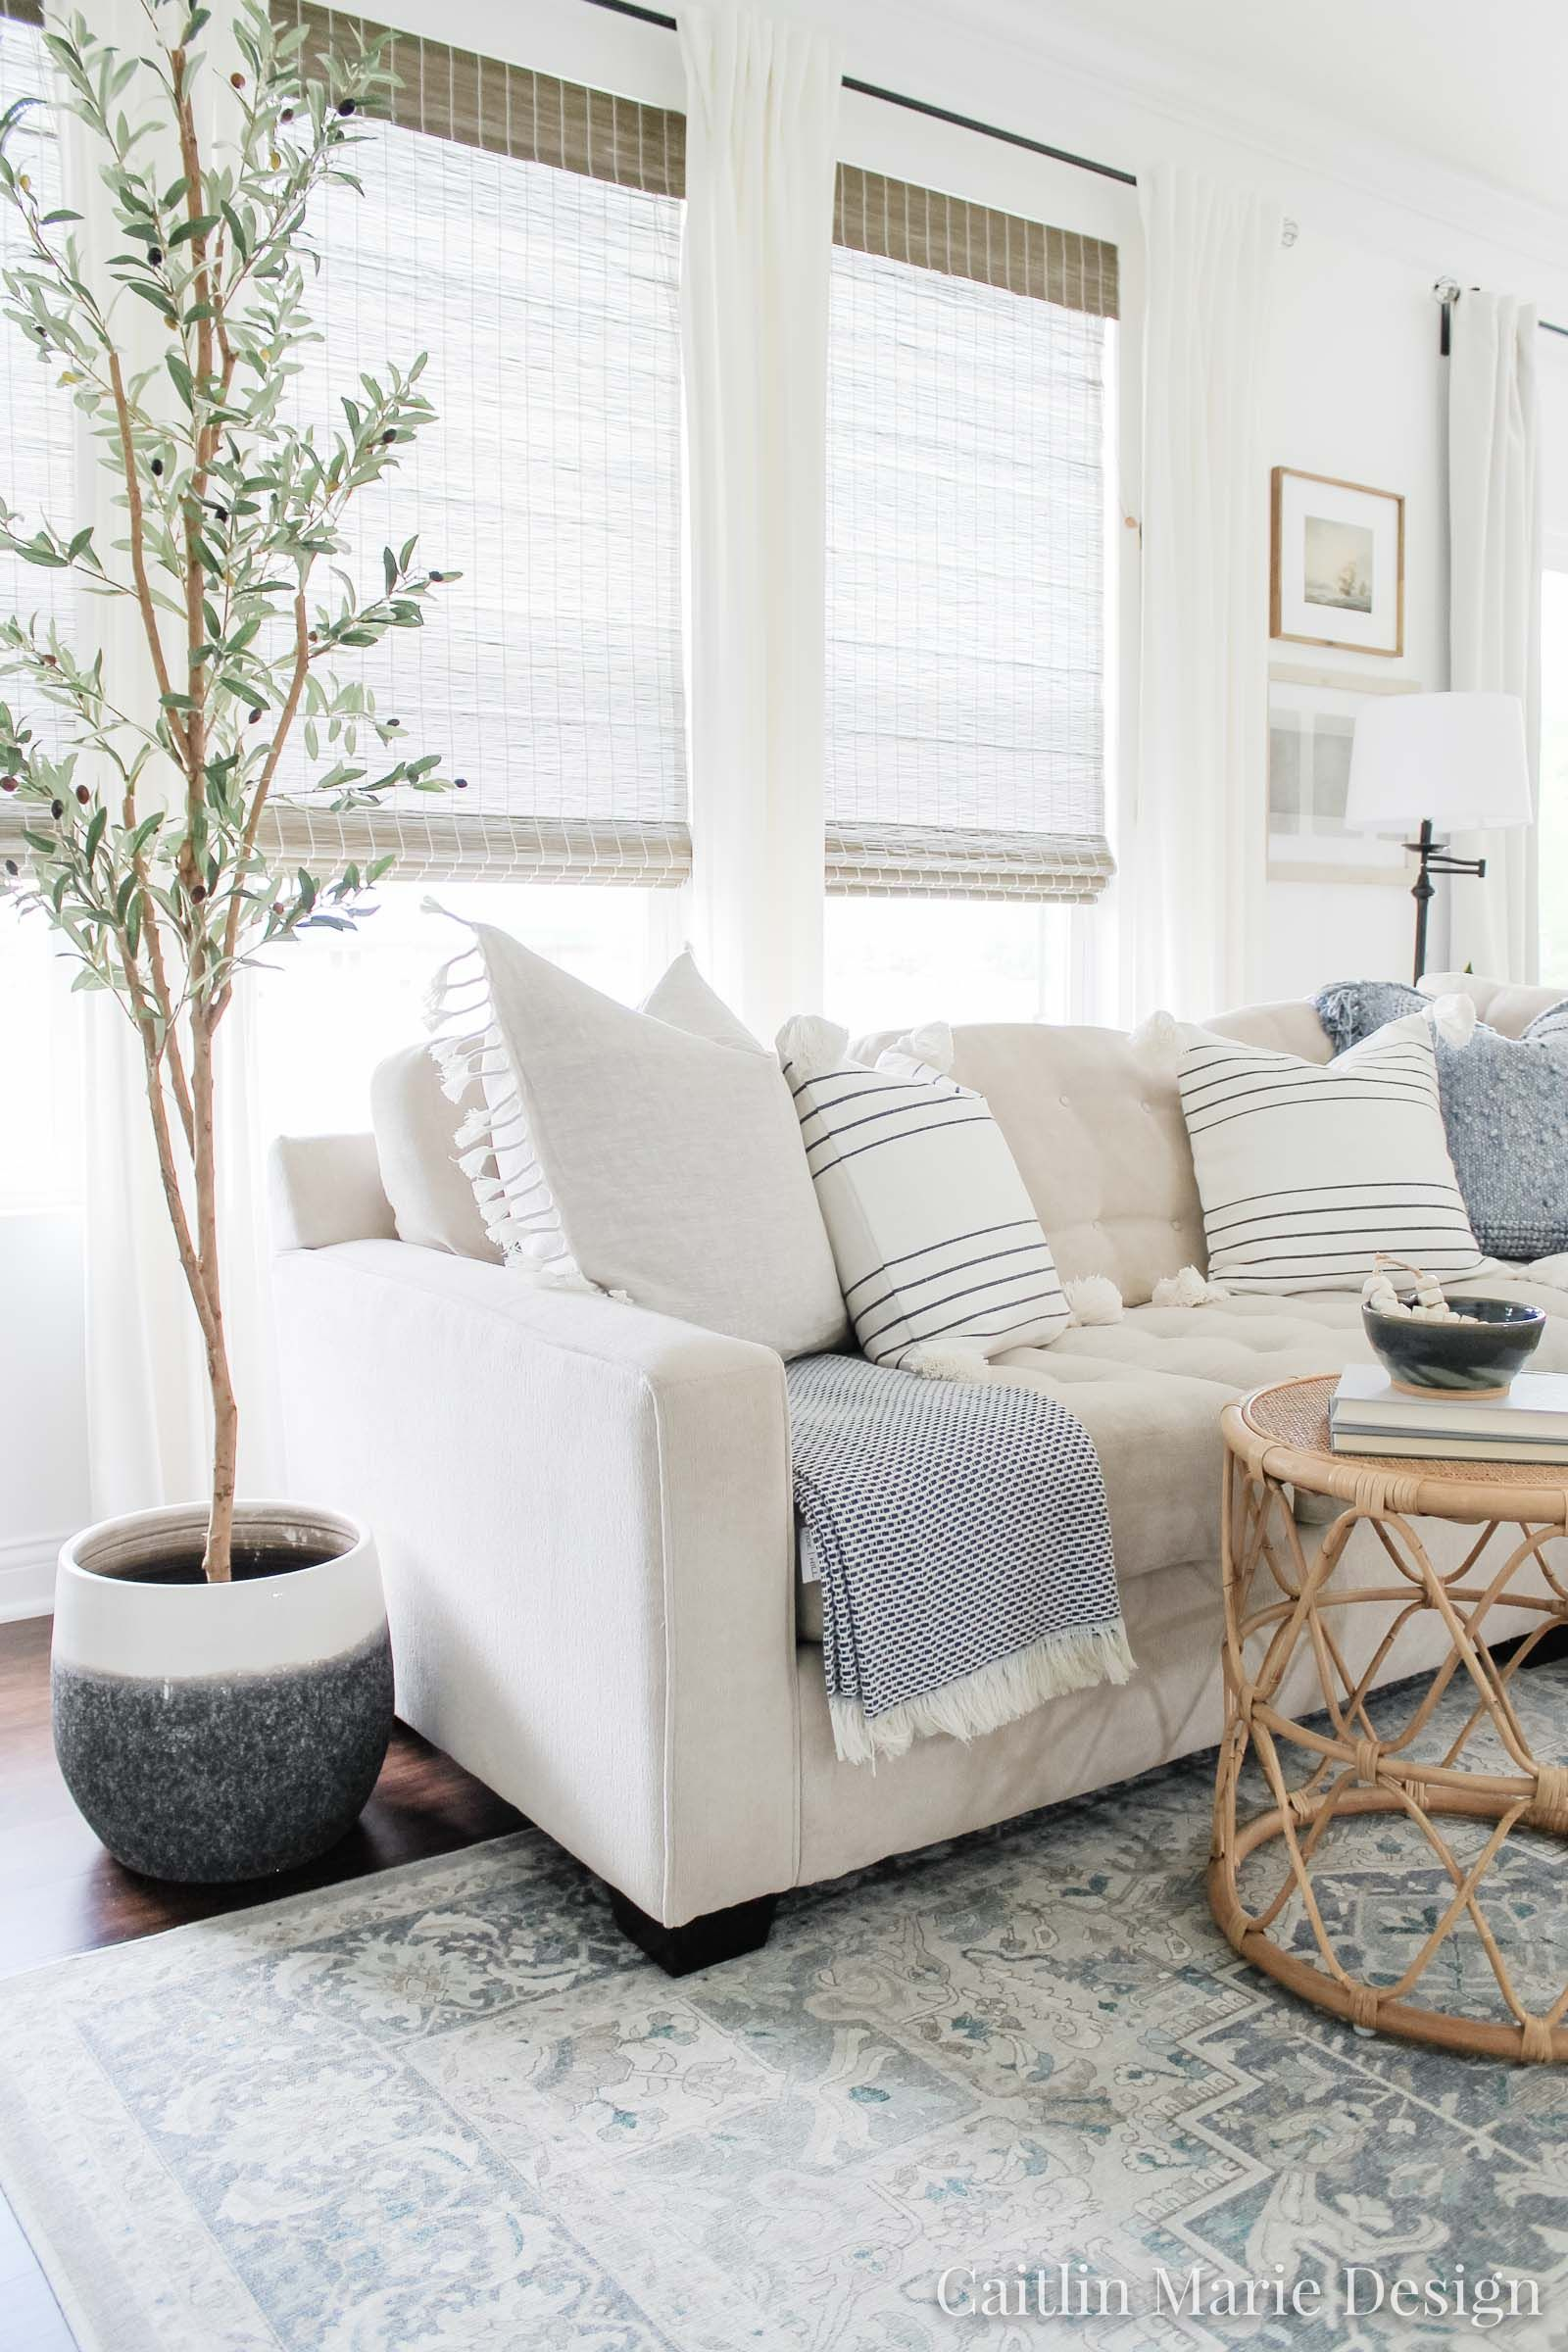 Photo of Coastal Home Decor Refresh with Serena & Lily – Caitlin Marie Design